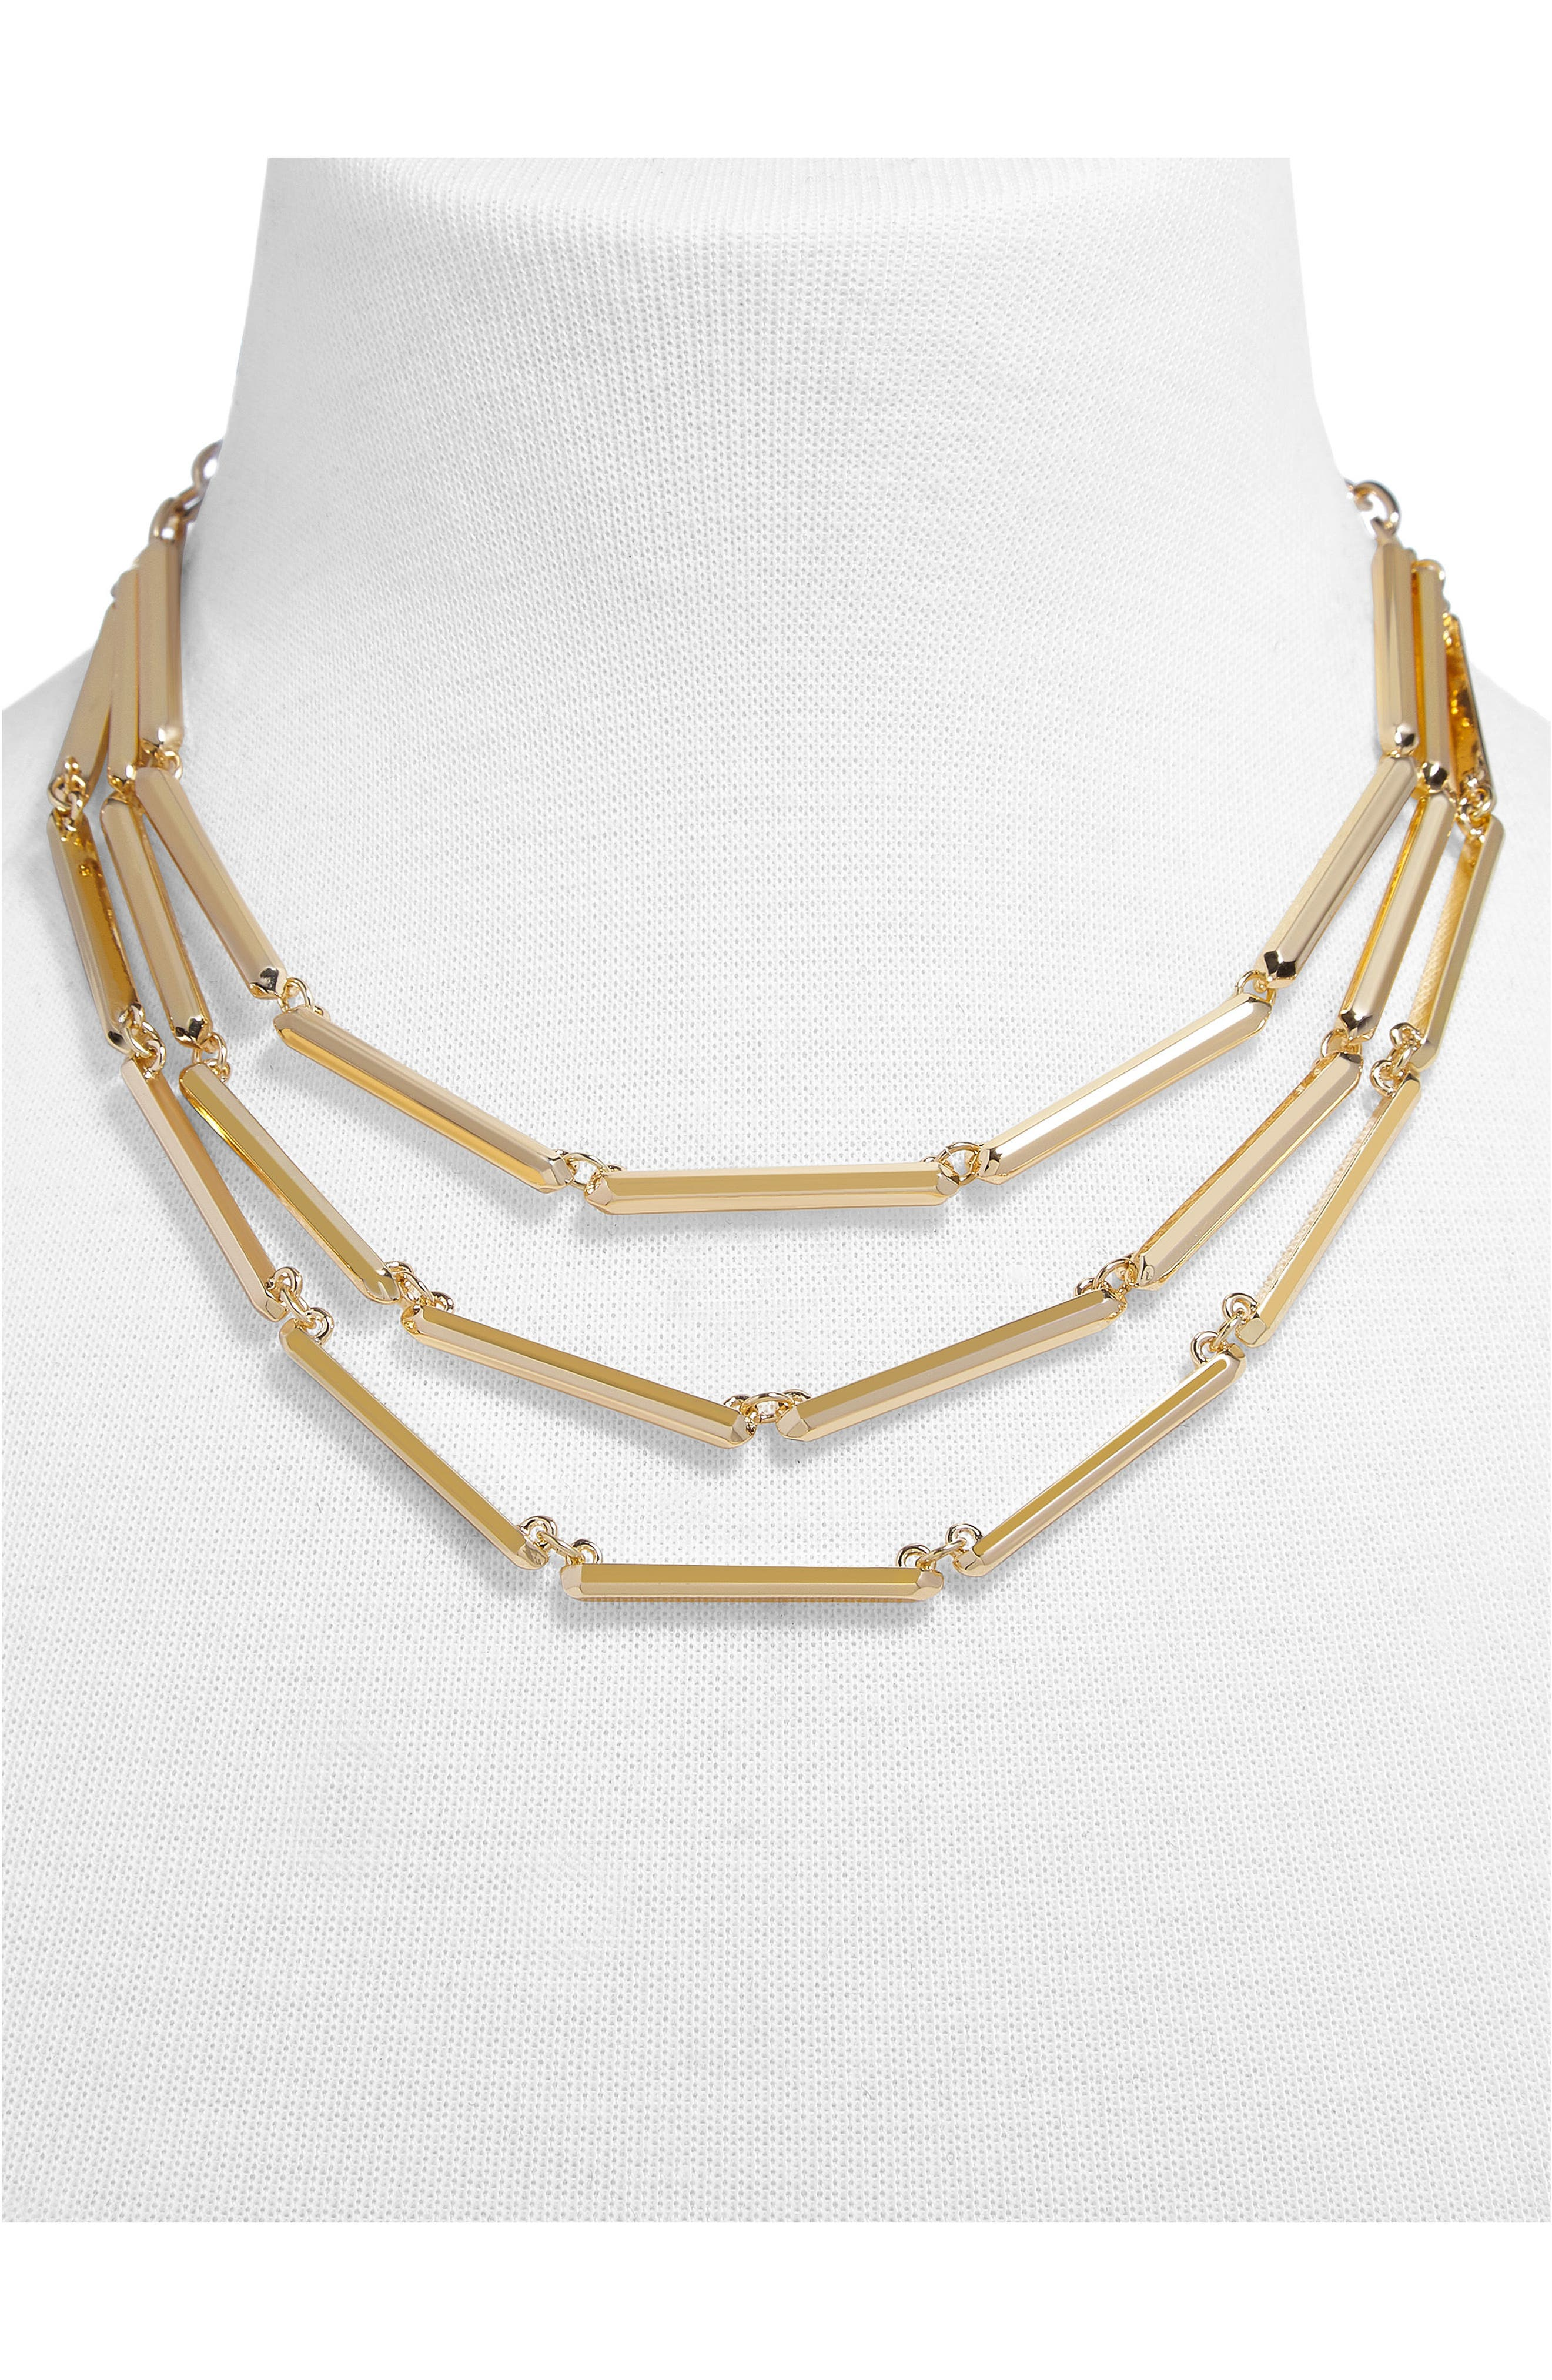 Payla Multistrand Necklace,                             Alternate thumbnail 2, color,                             Gold